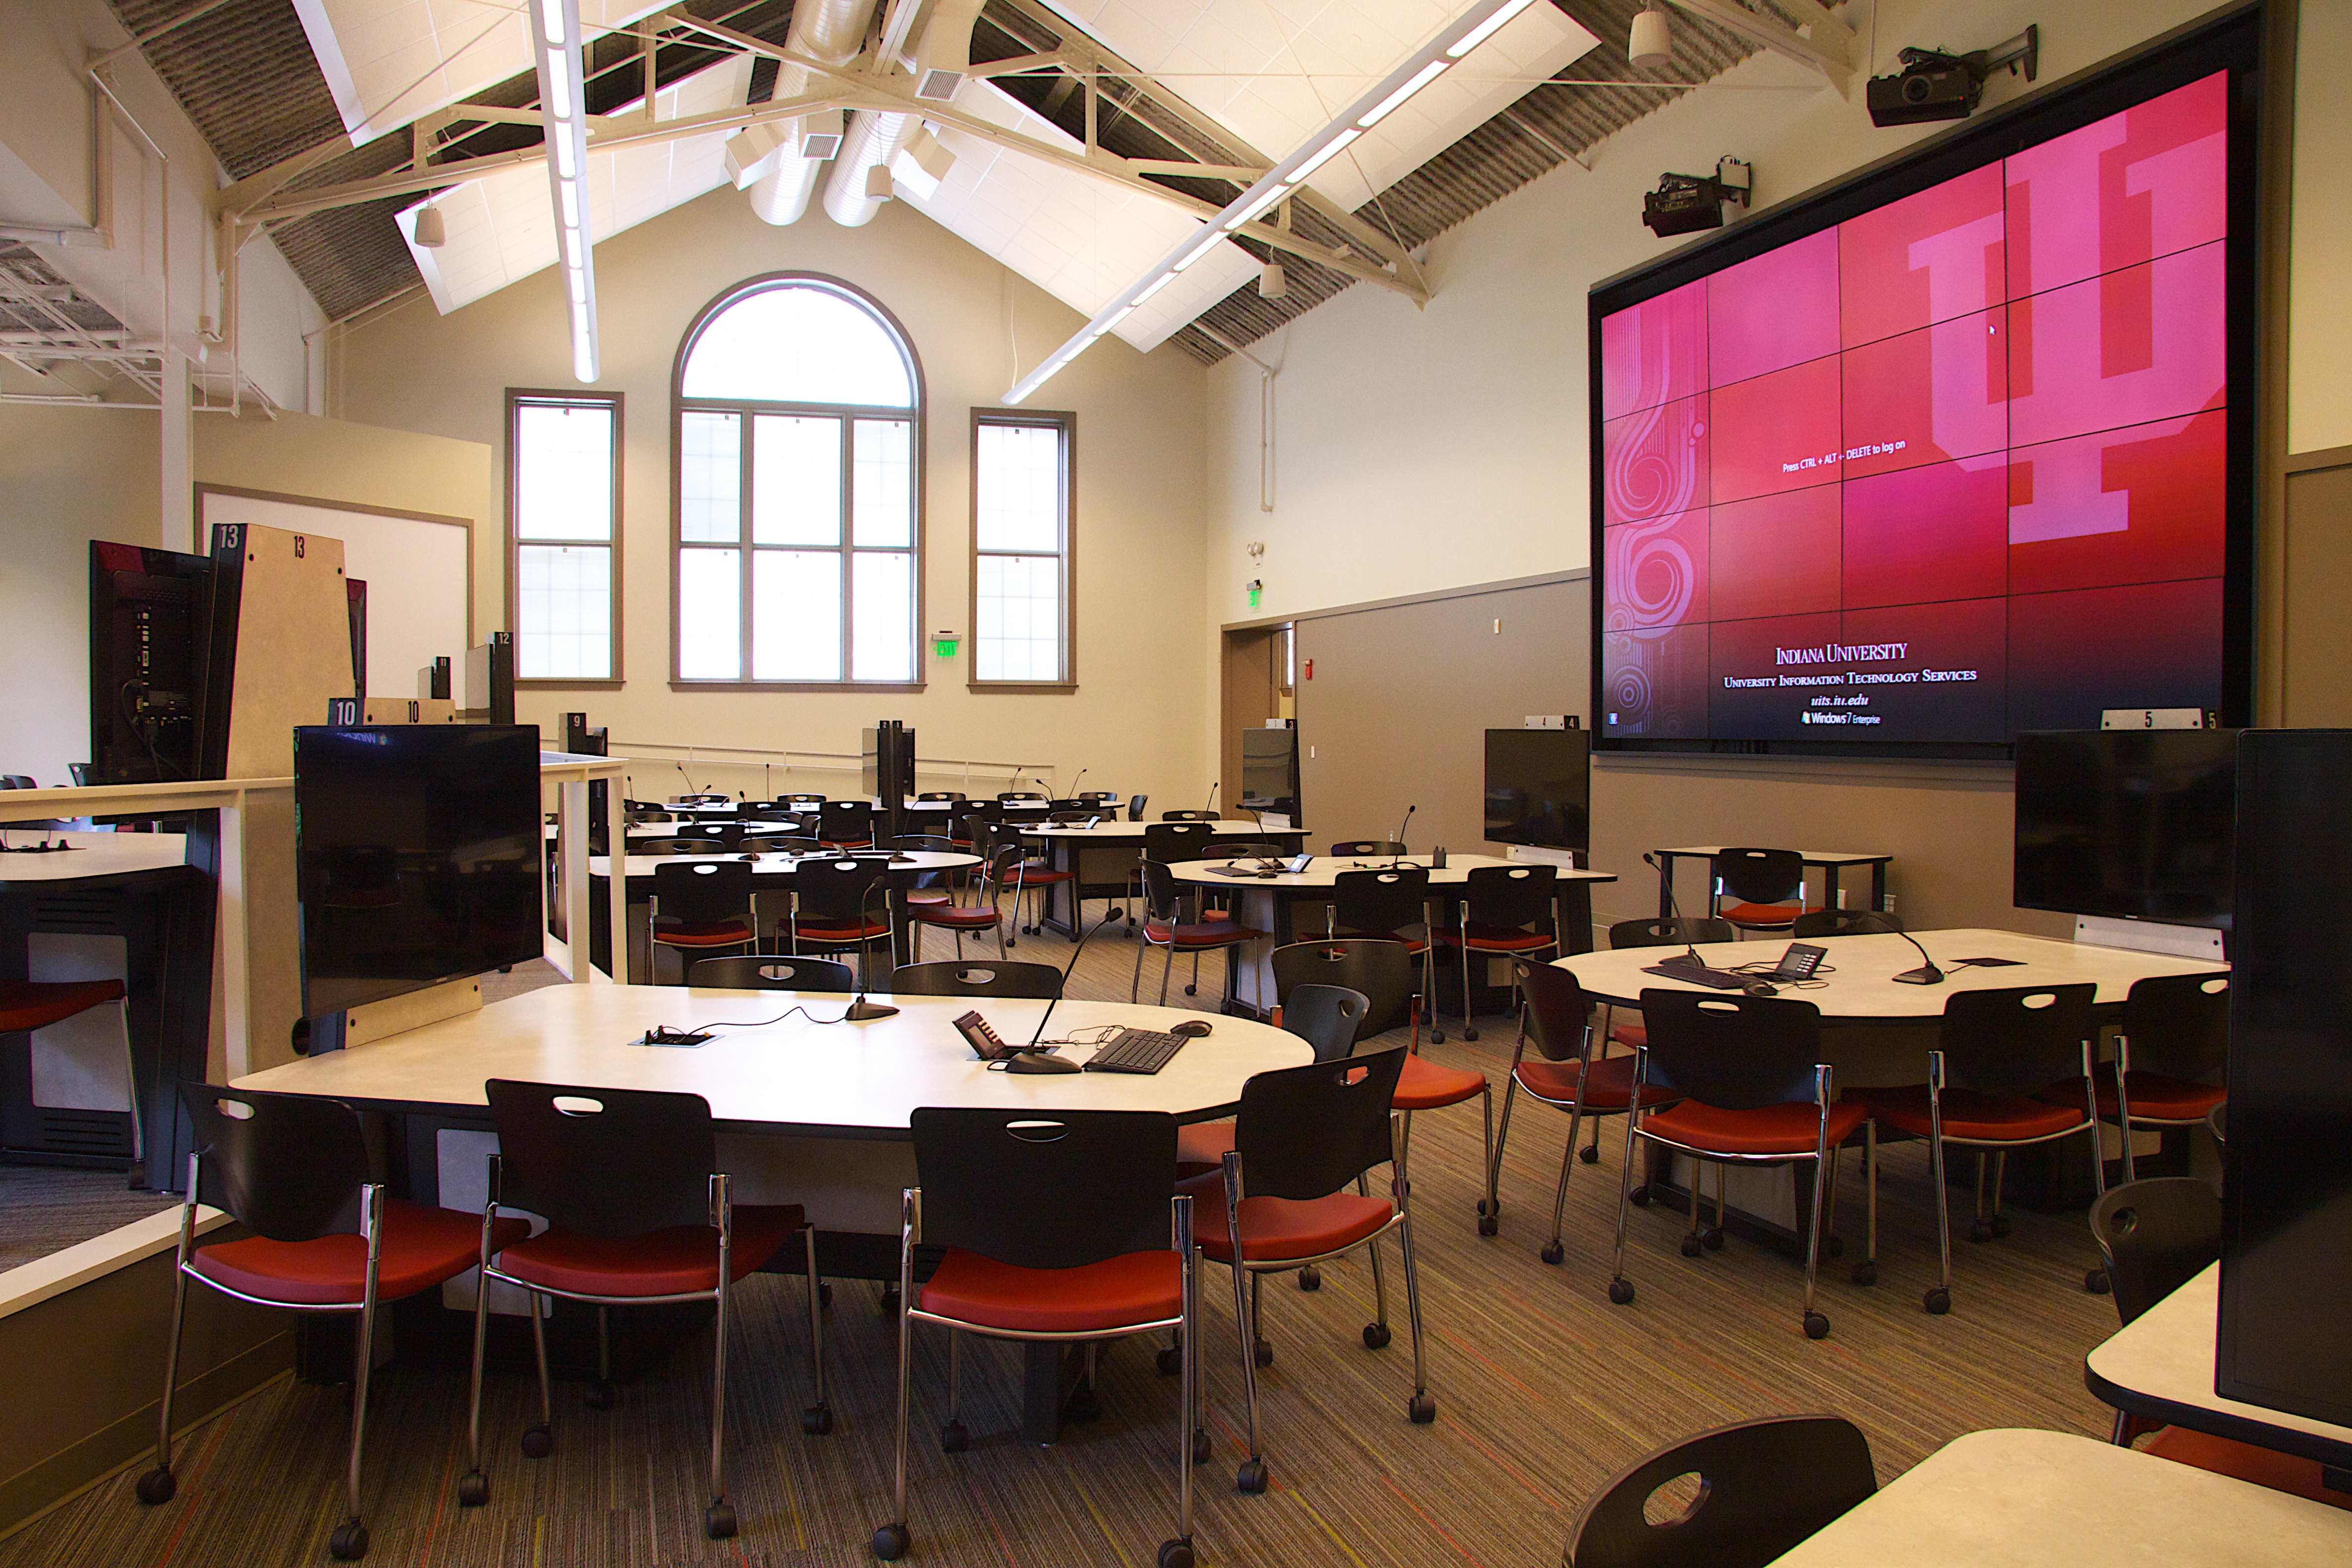 Indiana University invests in 'active learning classrooms' for the future